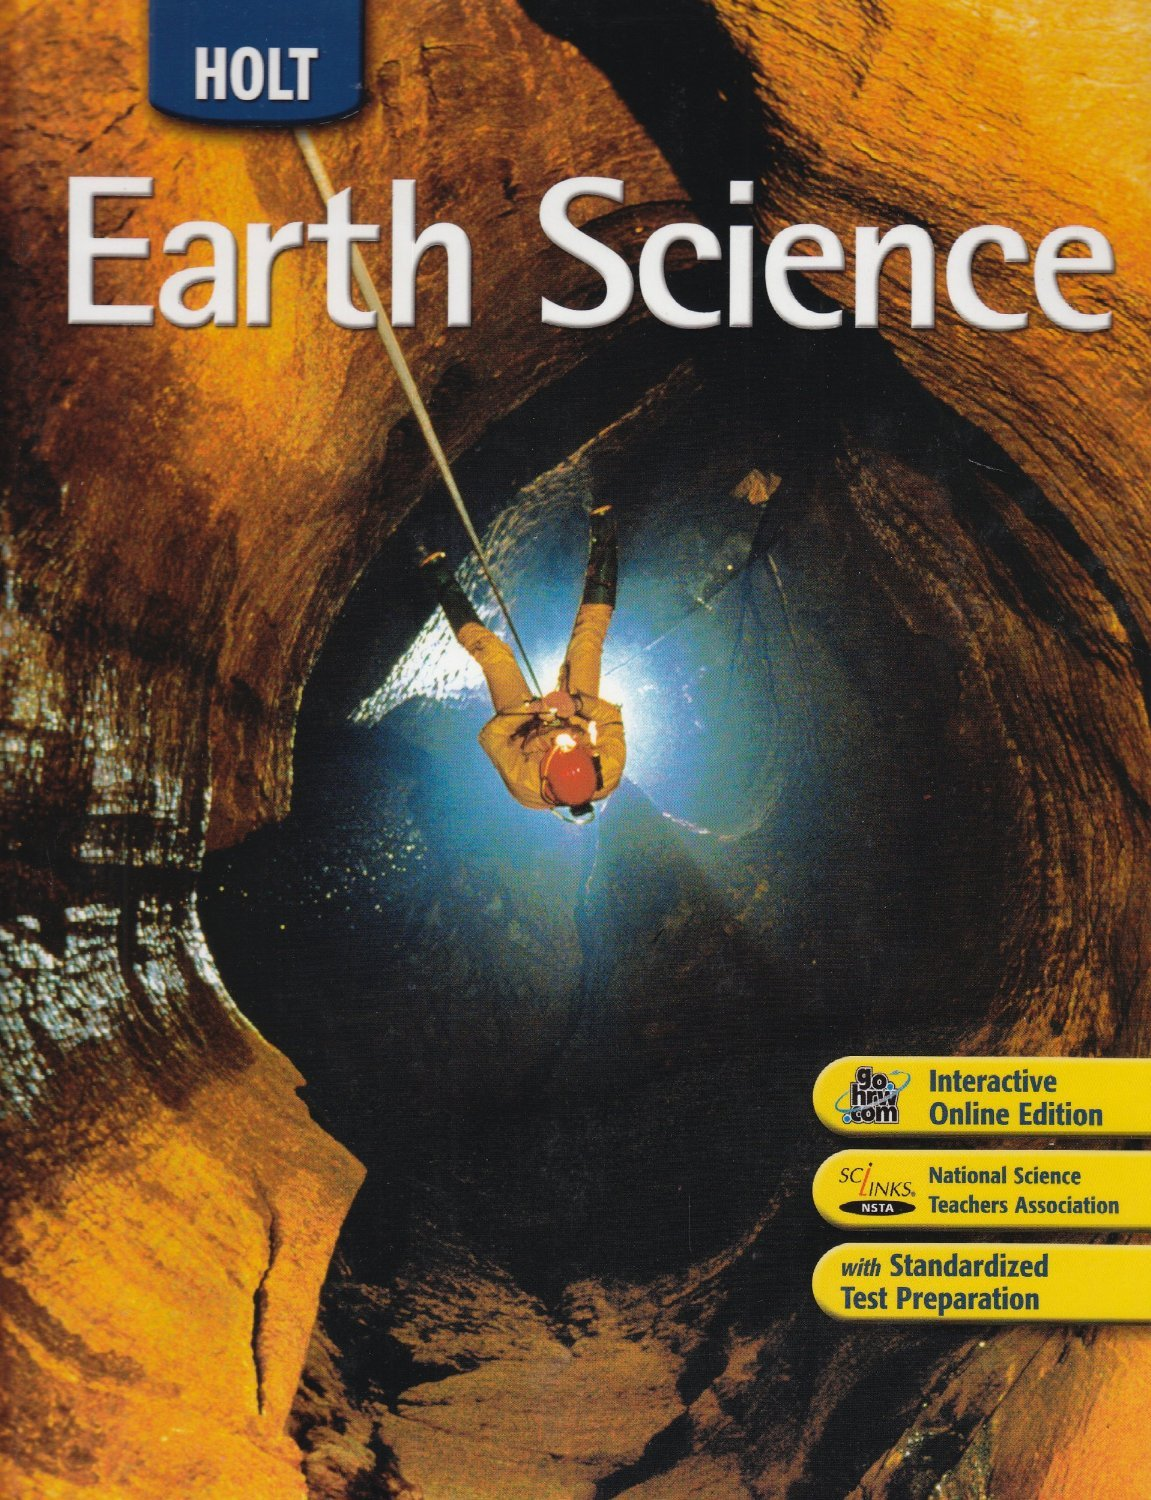 holt earth science textbook pdf